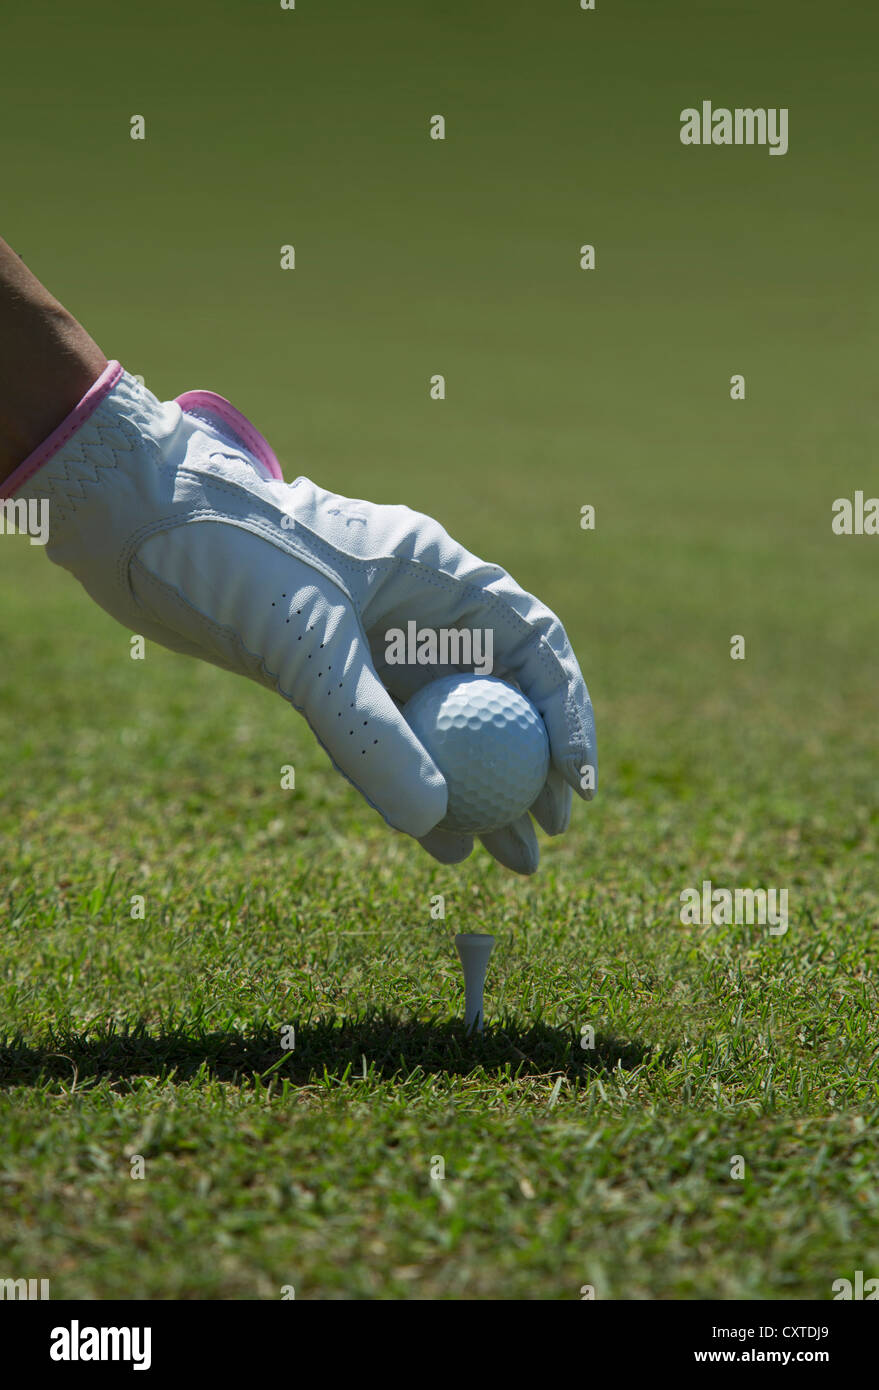 Gloved hand placing golf ball on tee - Stock Image